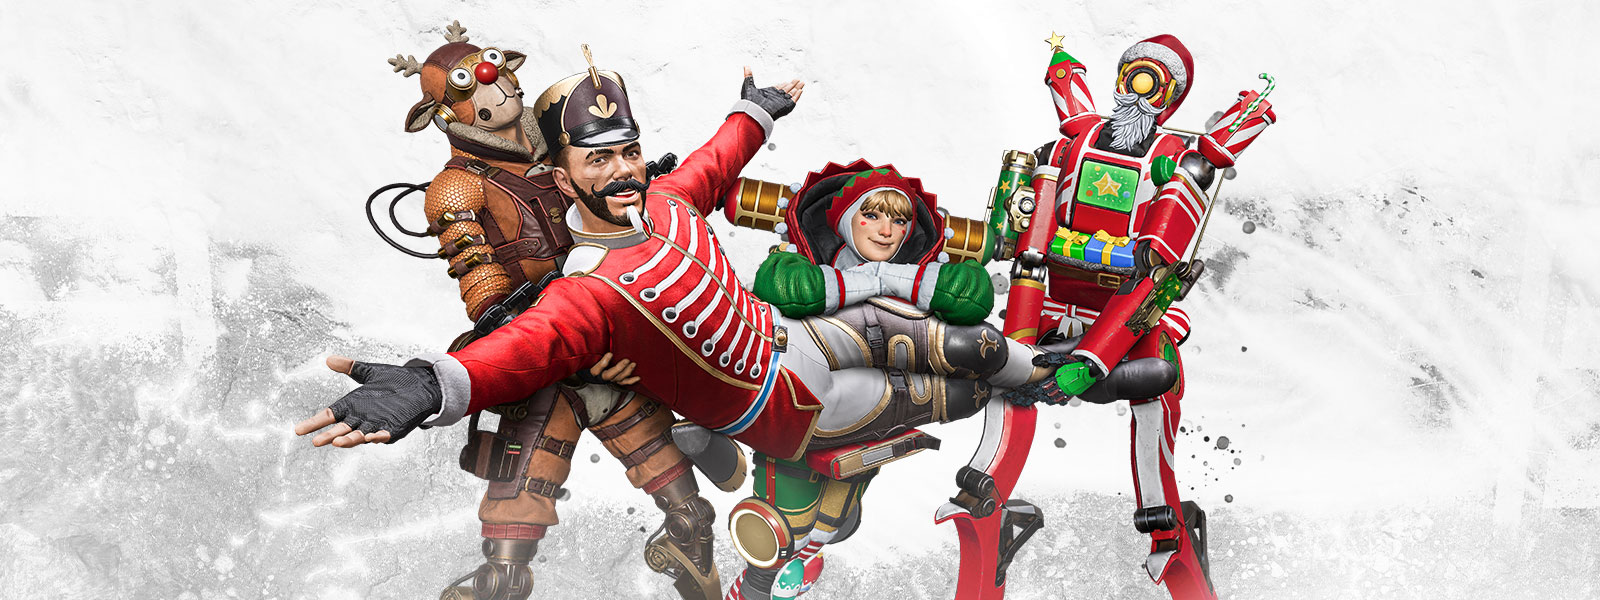 A group of Apex characters joyously pose in Christmas-themed costumes.